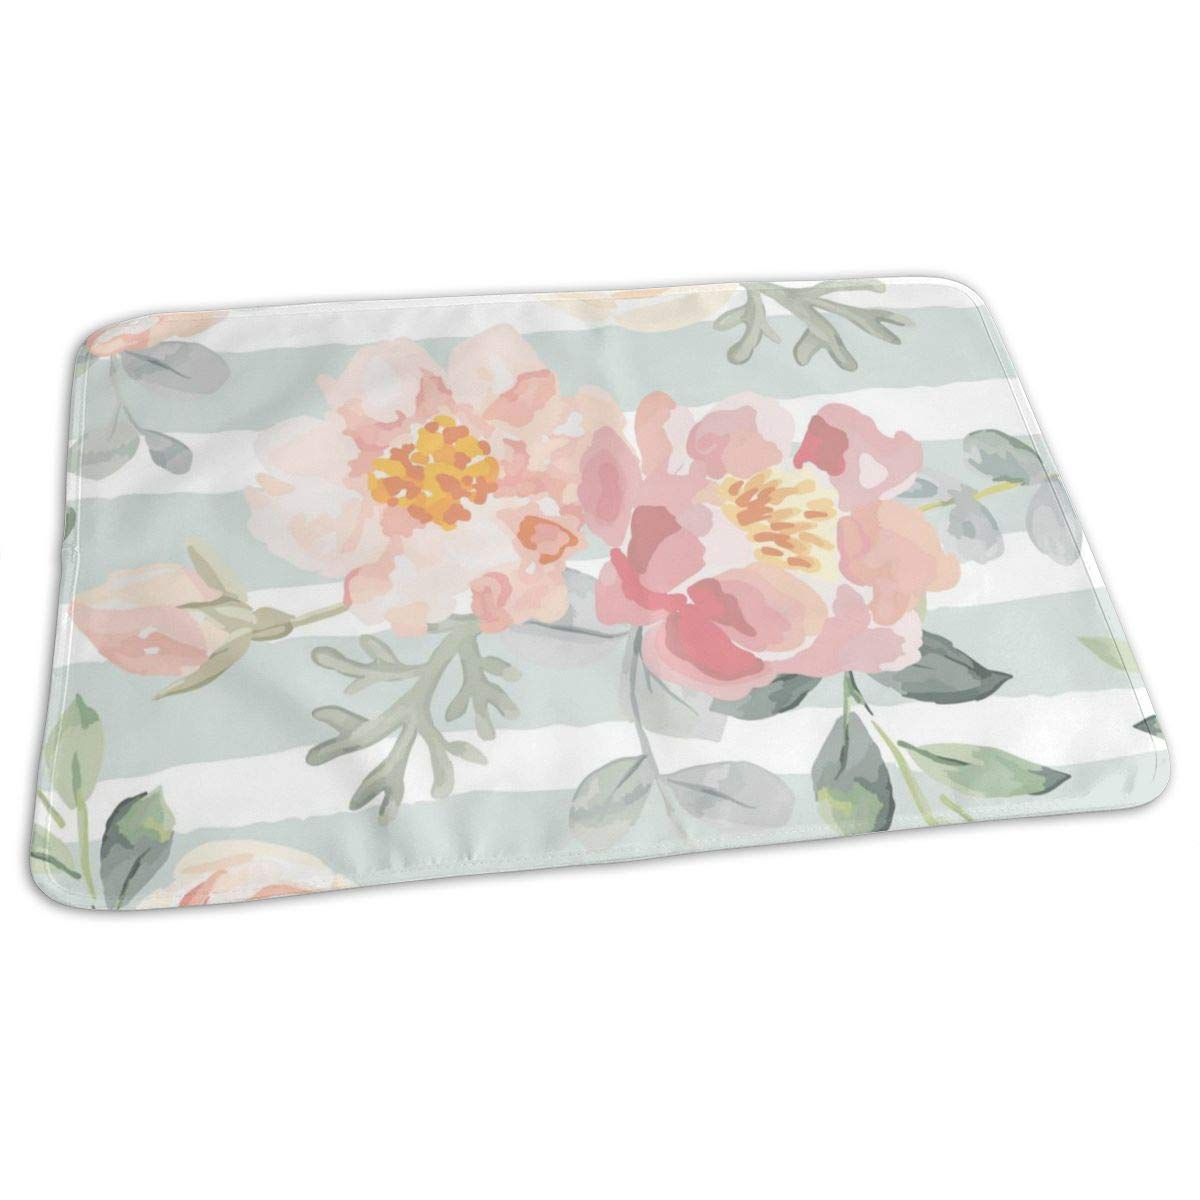 Osvbs Lovely Baby Reusable Waterproof Portable Pale Pink Roses and Peonies Changing Pad Home Travel 27.5''x19.7'' by Osvbs